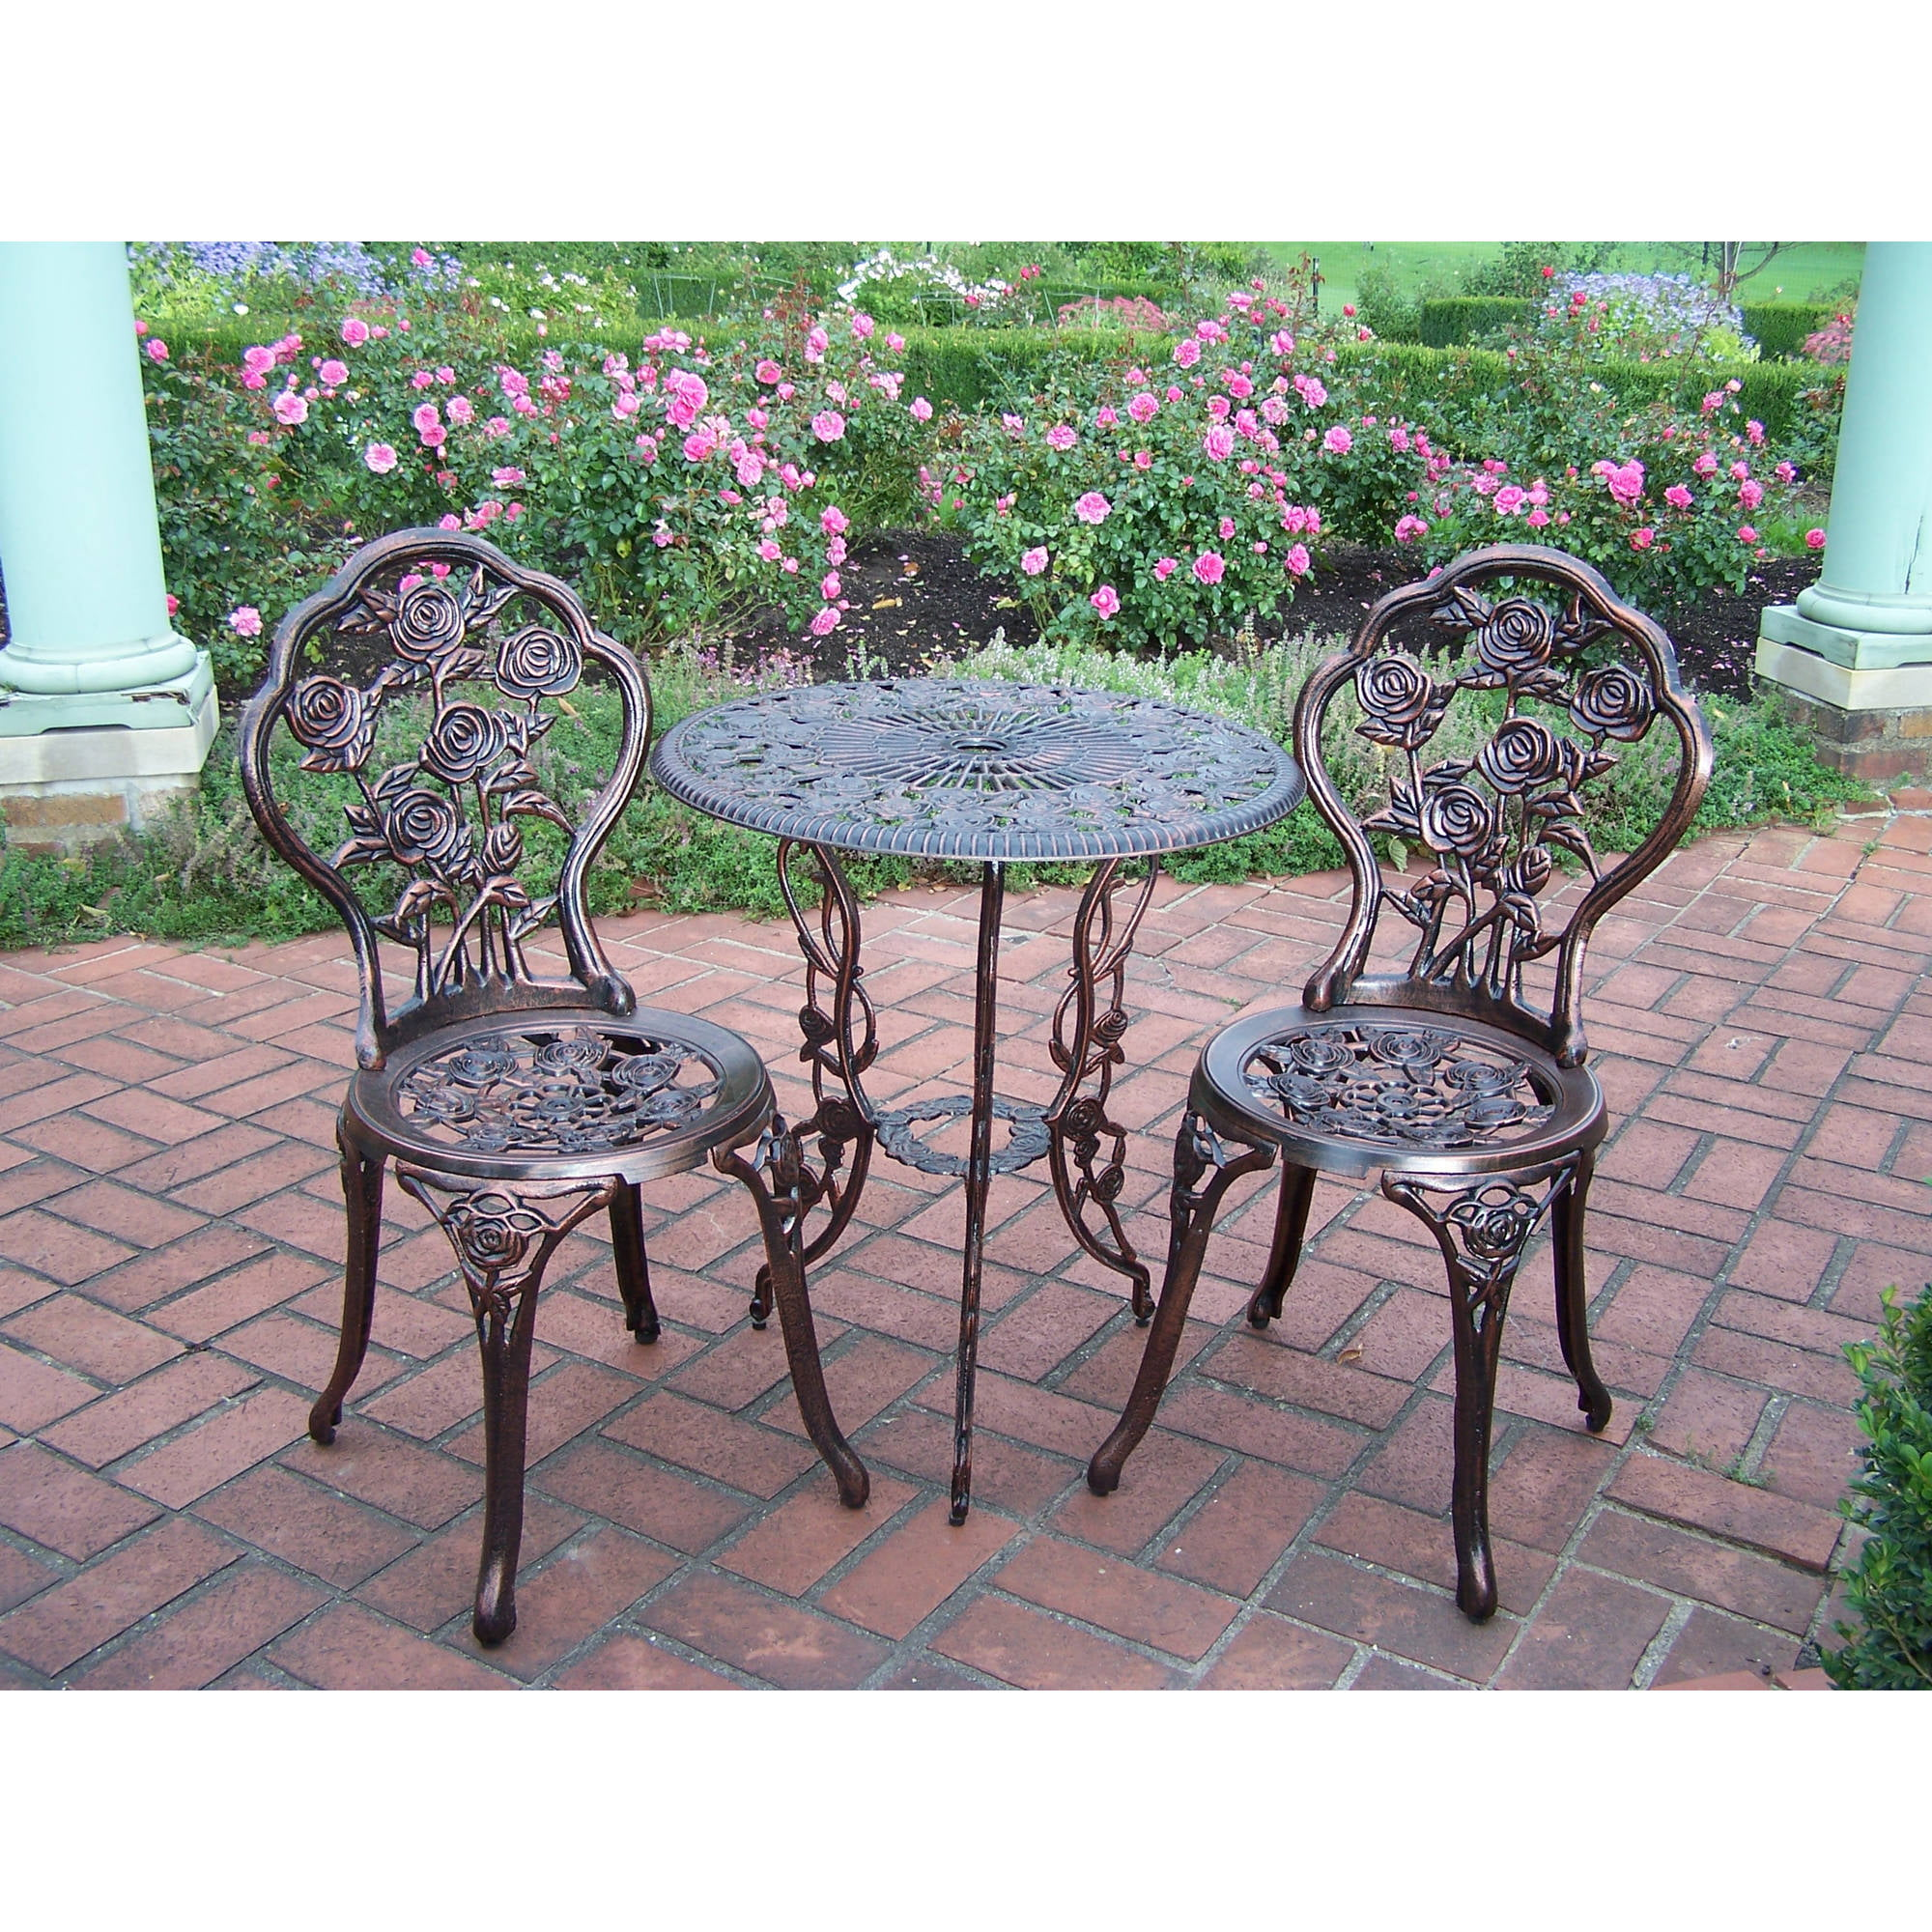 wicker charleston set dining fabrics recycled furniture pipe aluminium cast plastic pvc patio